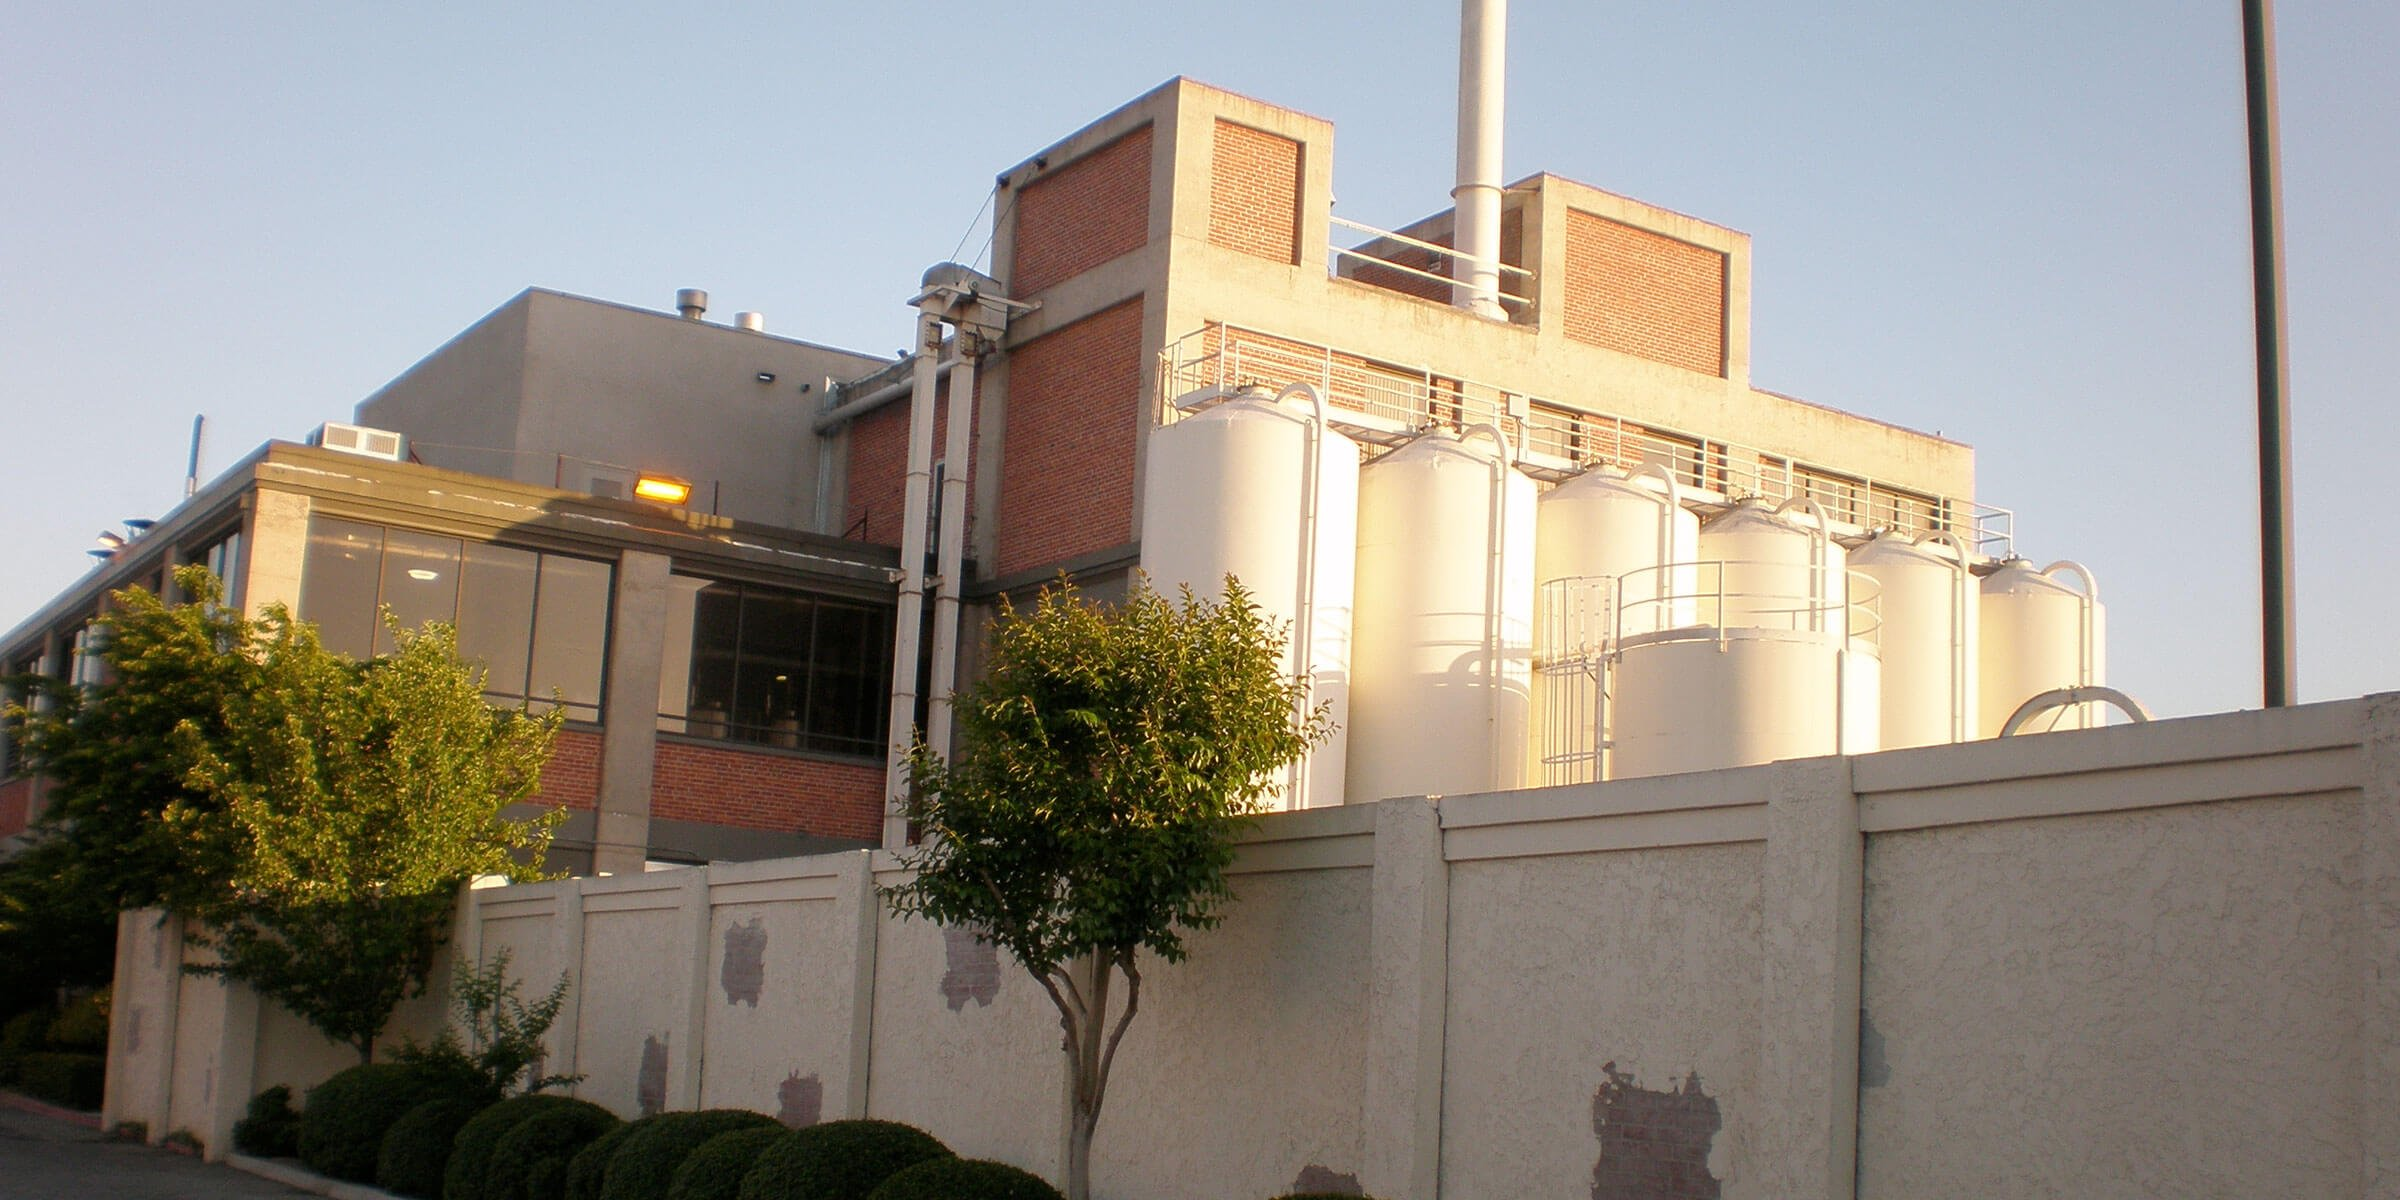 Outside the production facility at Gordon Biersch Brewing Company in San Jose, California